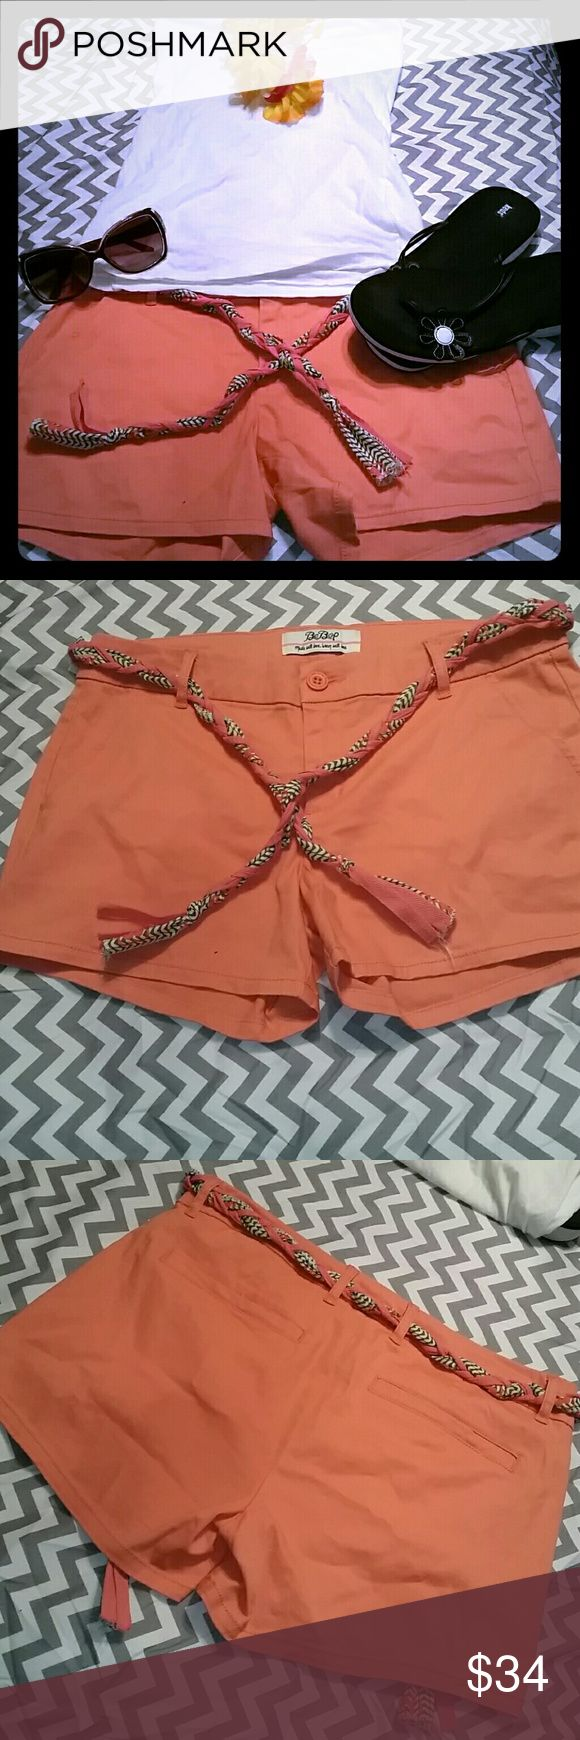 Women's shorts orange . Shorts have never been worn. They are in excellent condition.  98% cotton 2%spandex. BEBOP Shorts